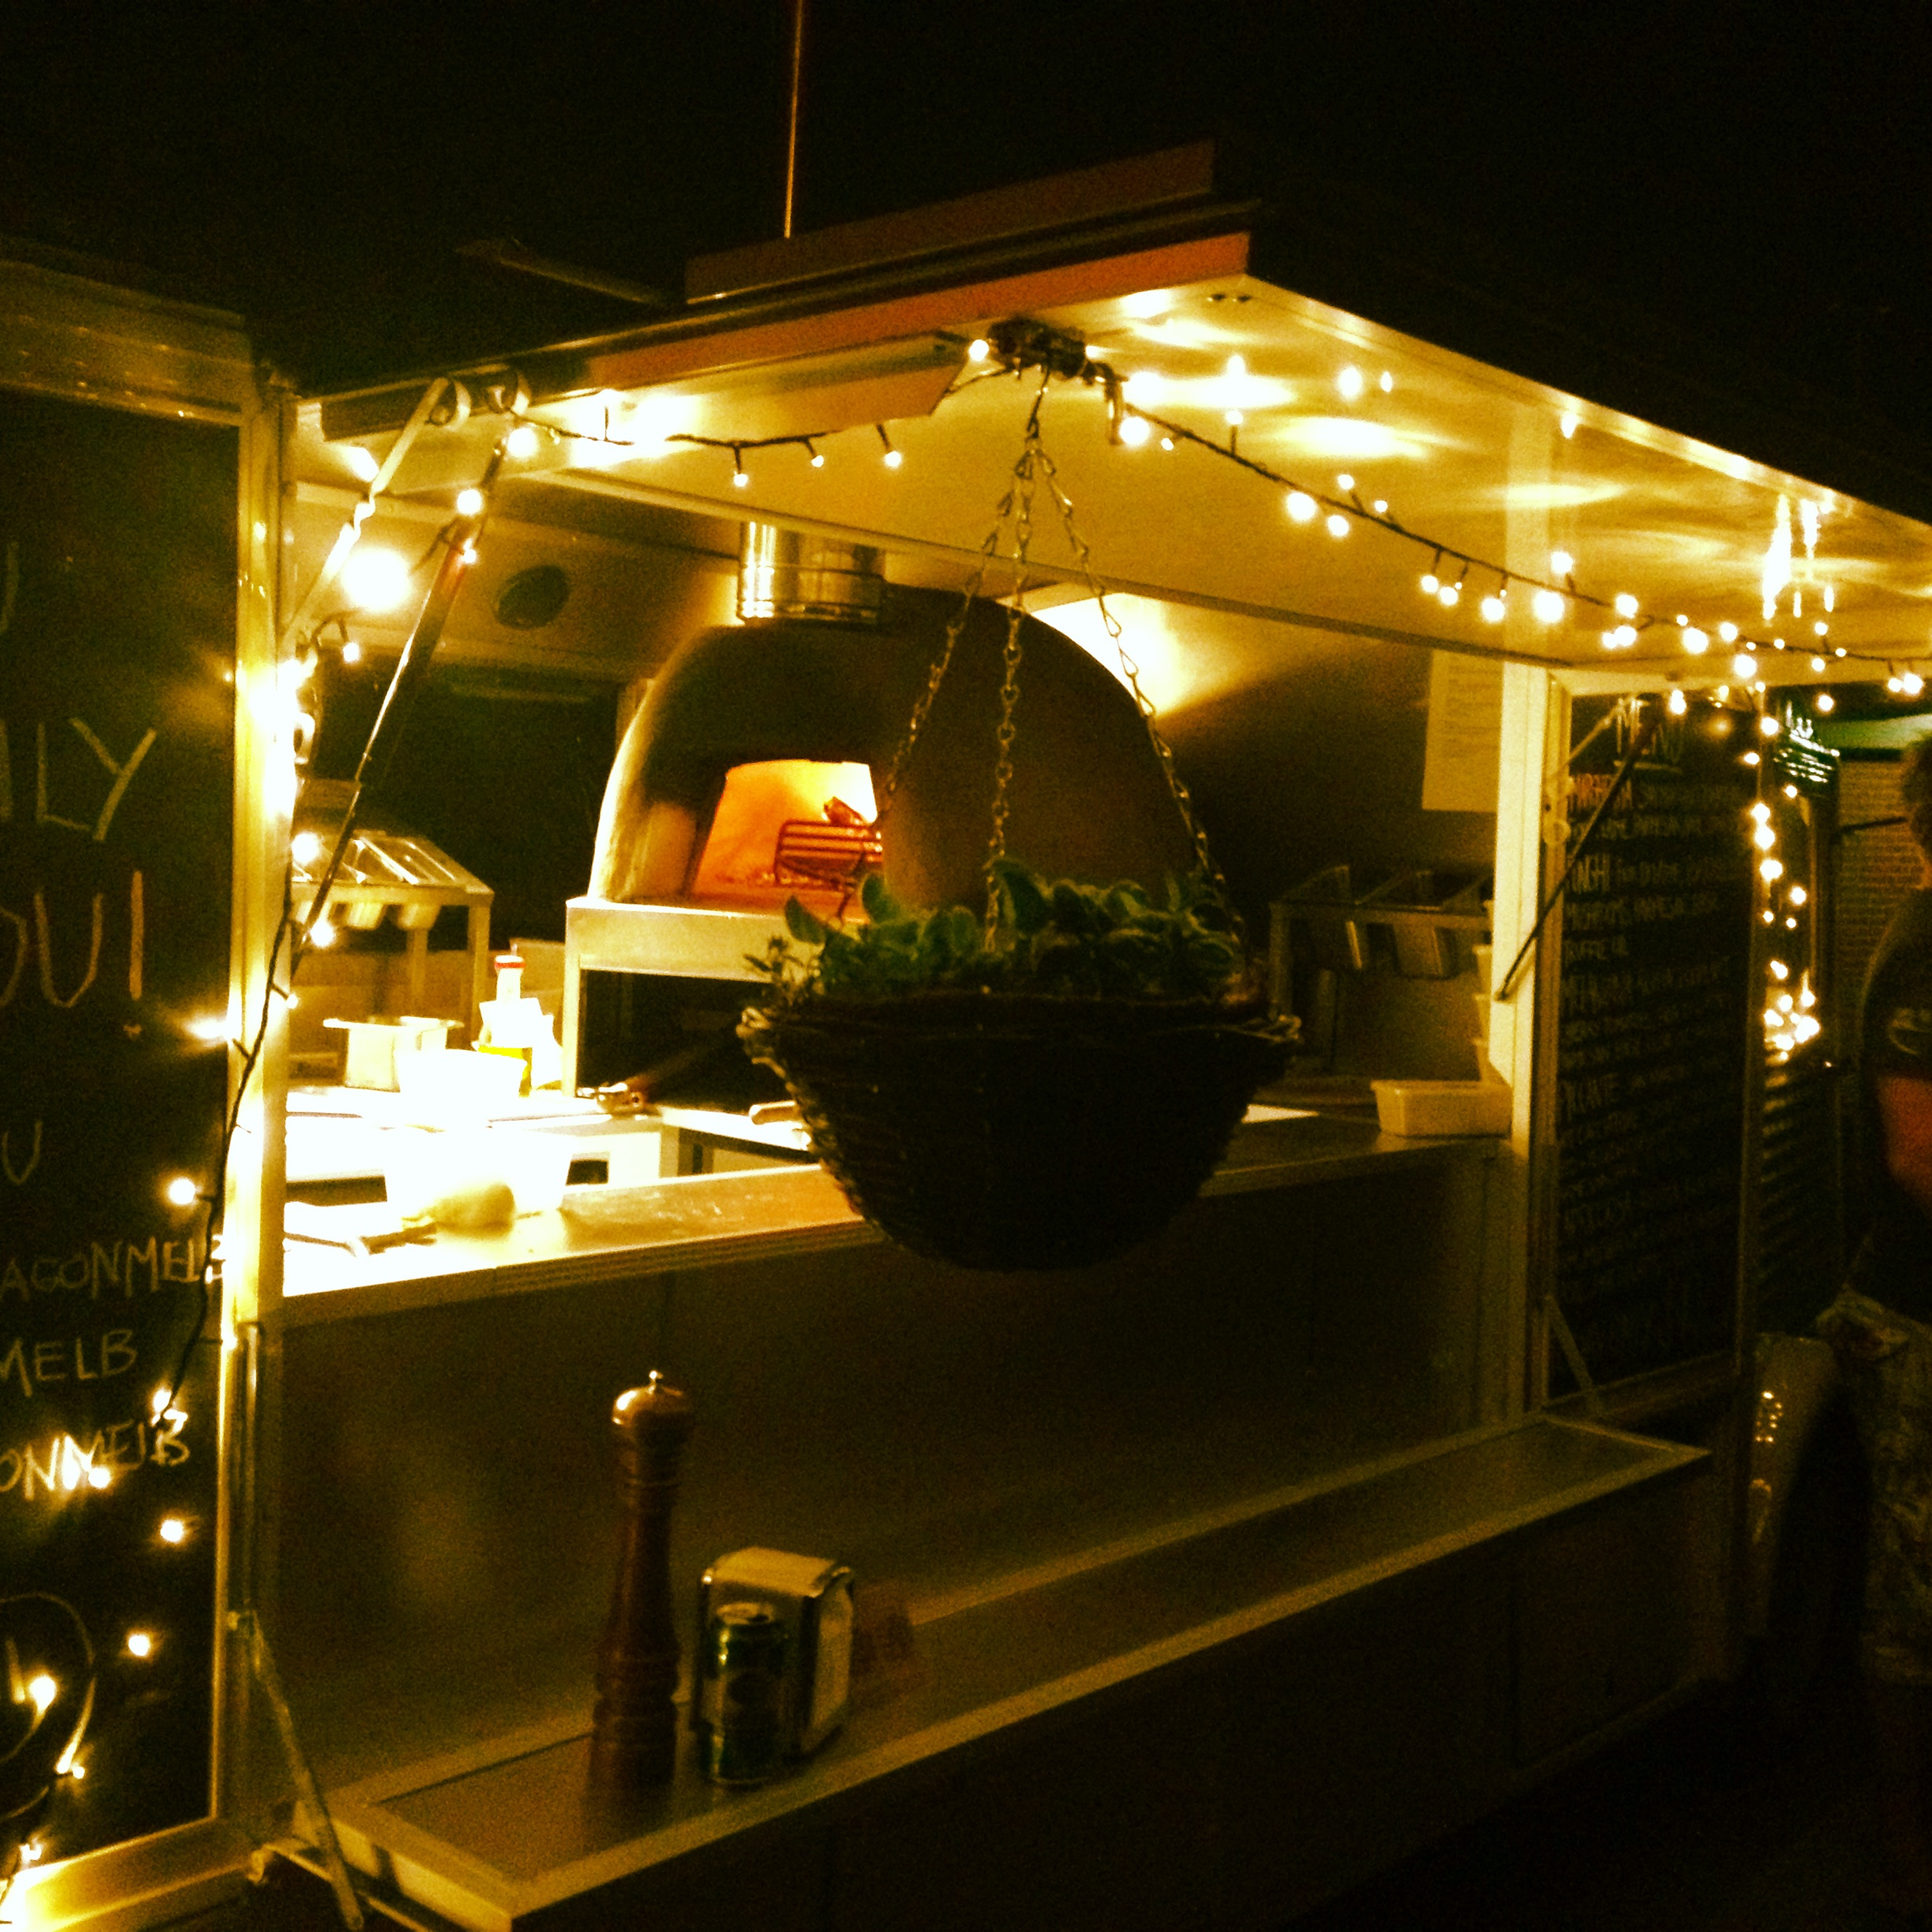 Night time at the Pizza Wagon